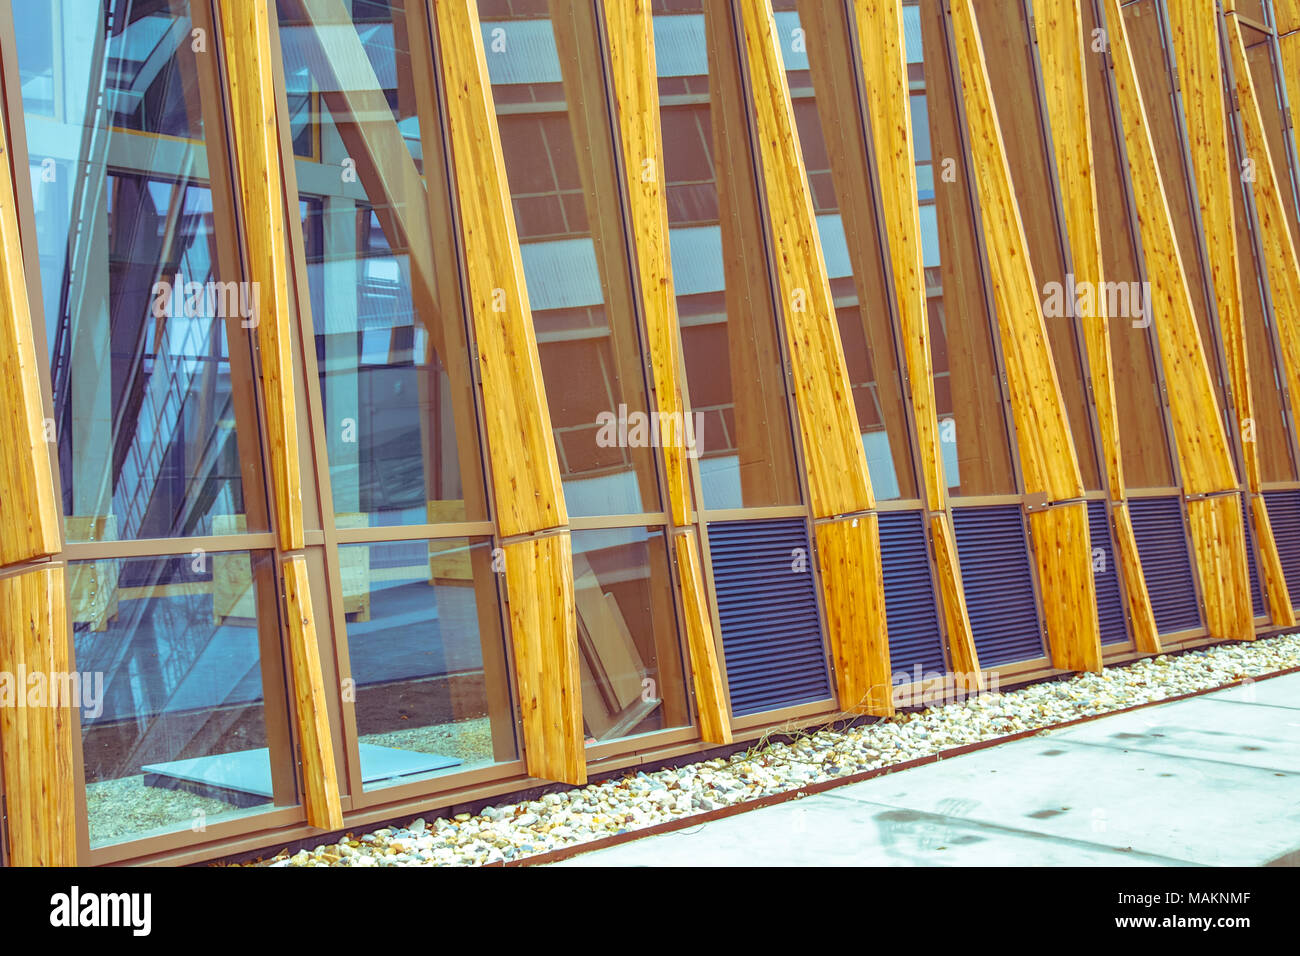 Architectural detail of facade of modern sustainable building on Groningen Campus, Netherlands - Stock Image